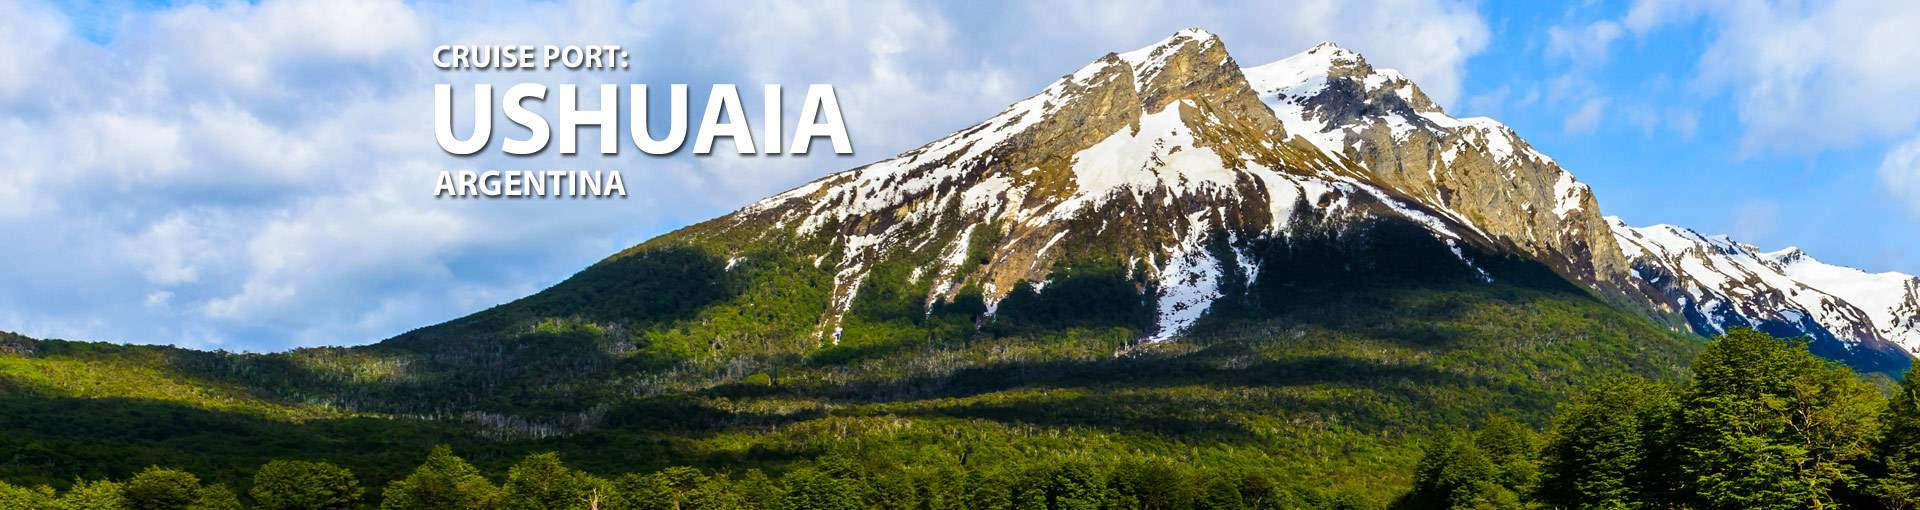 Cruises from Ushuaia, Argentina